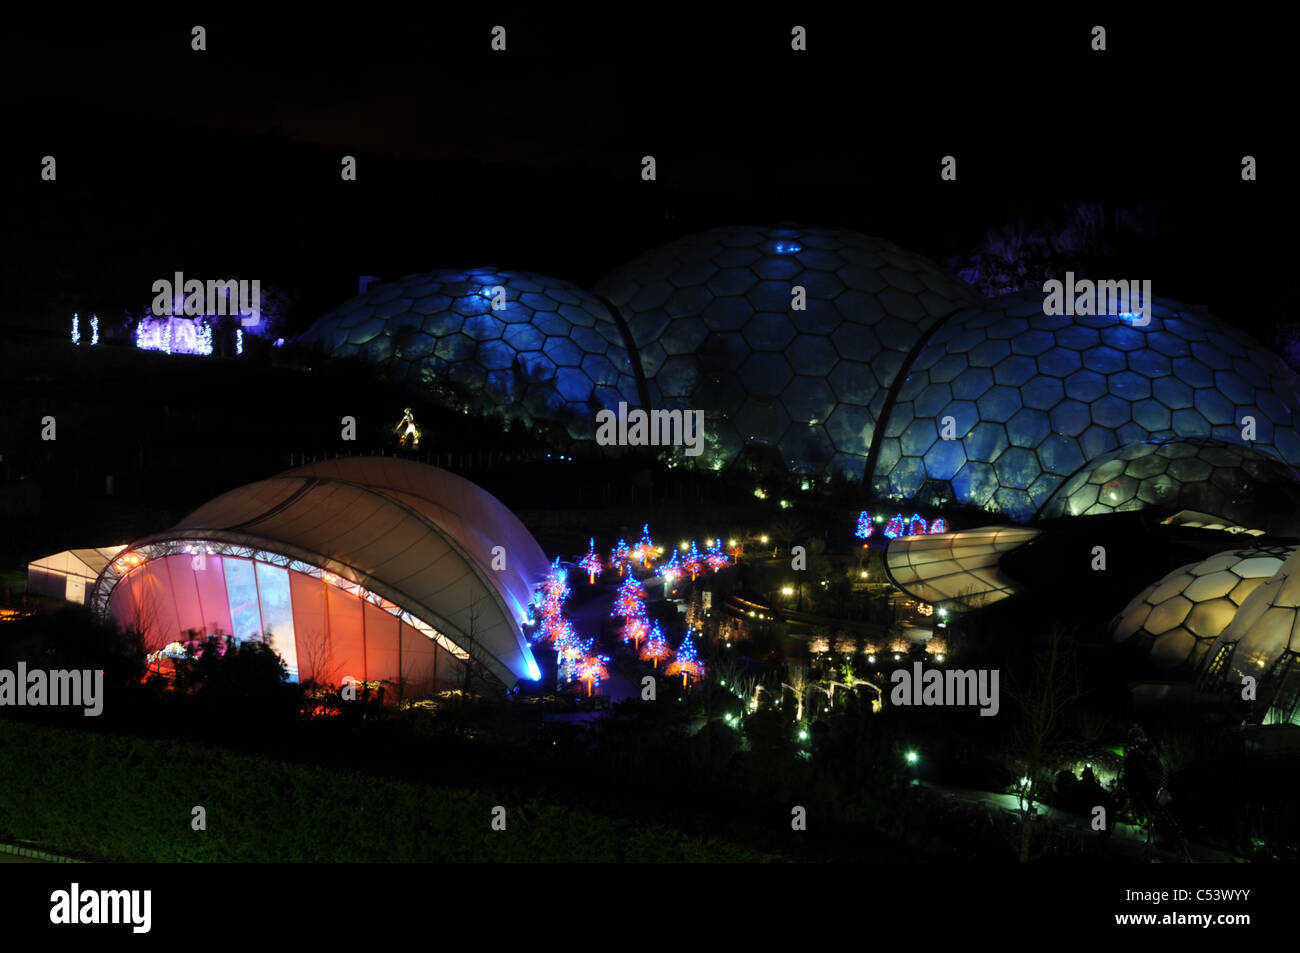 Eden Project At Night During The Winter Season When Biomes And Surroundings Are Floodlit Cornwall UK